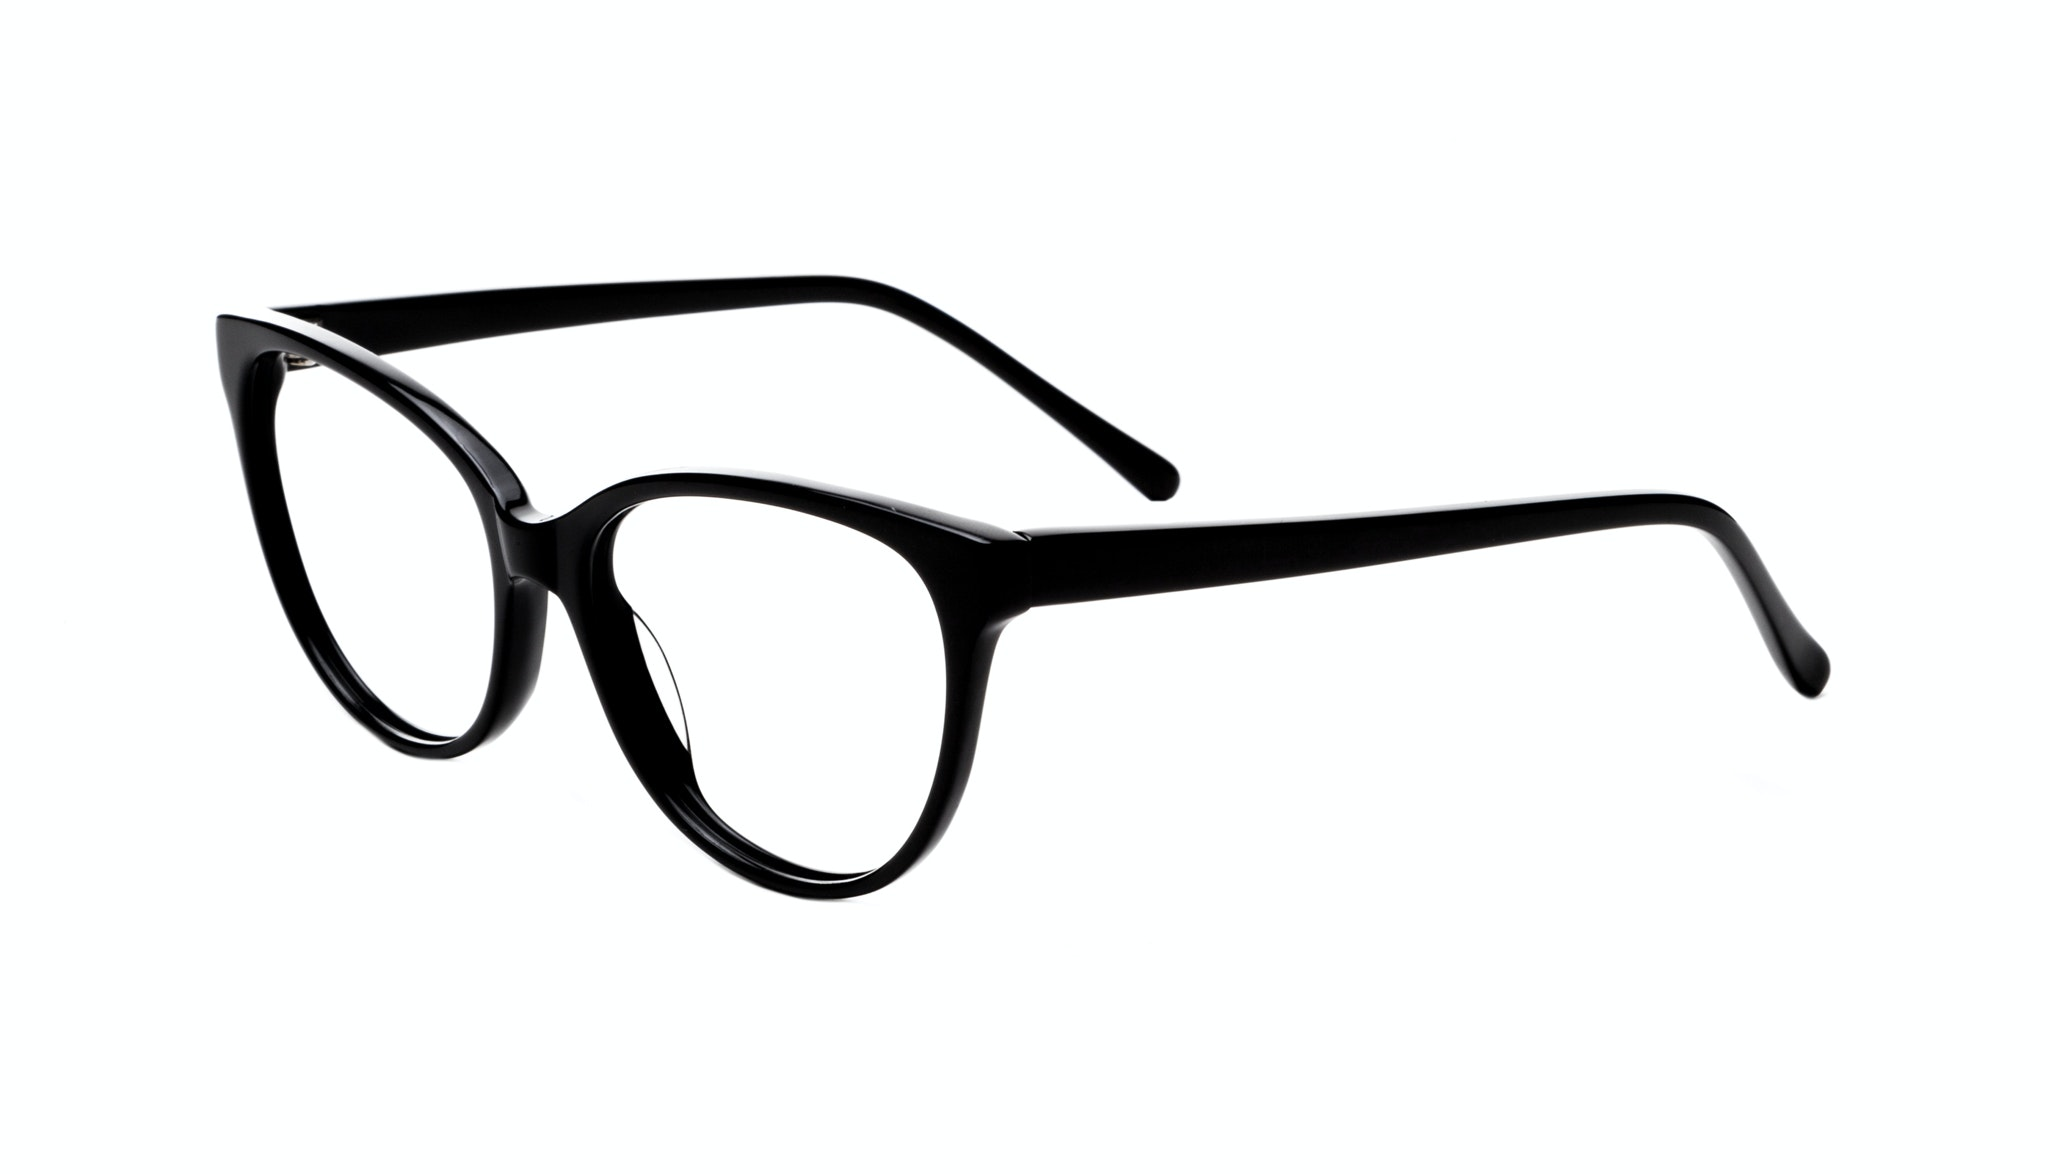 Affordable Fashion Glasses Cat Eye Round Eyeglasses Women Imagine Onyx Tilt